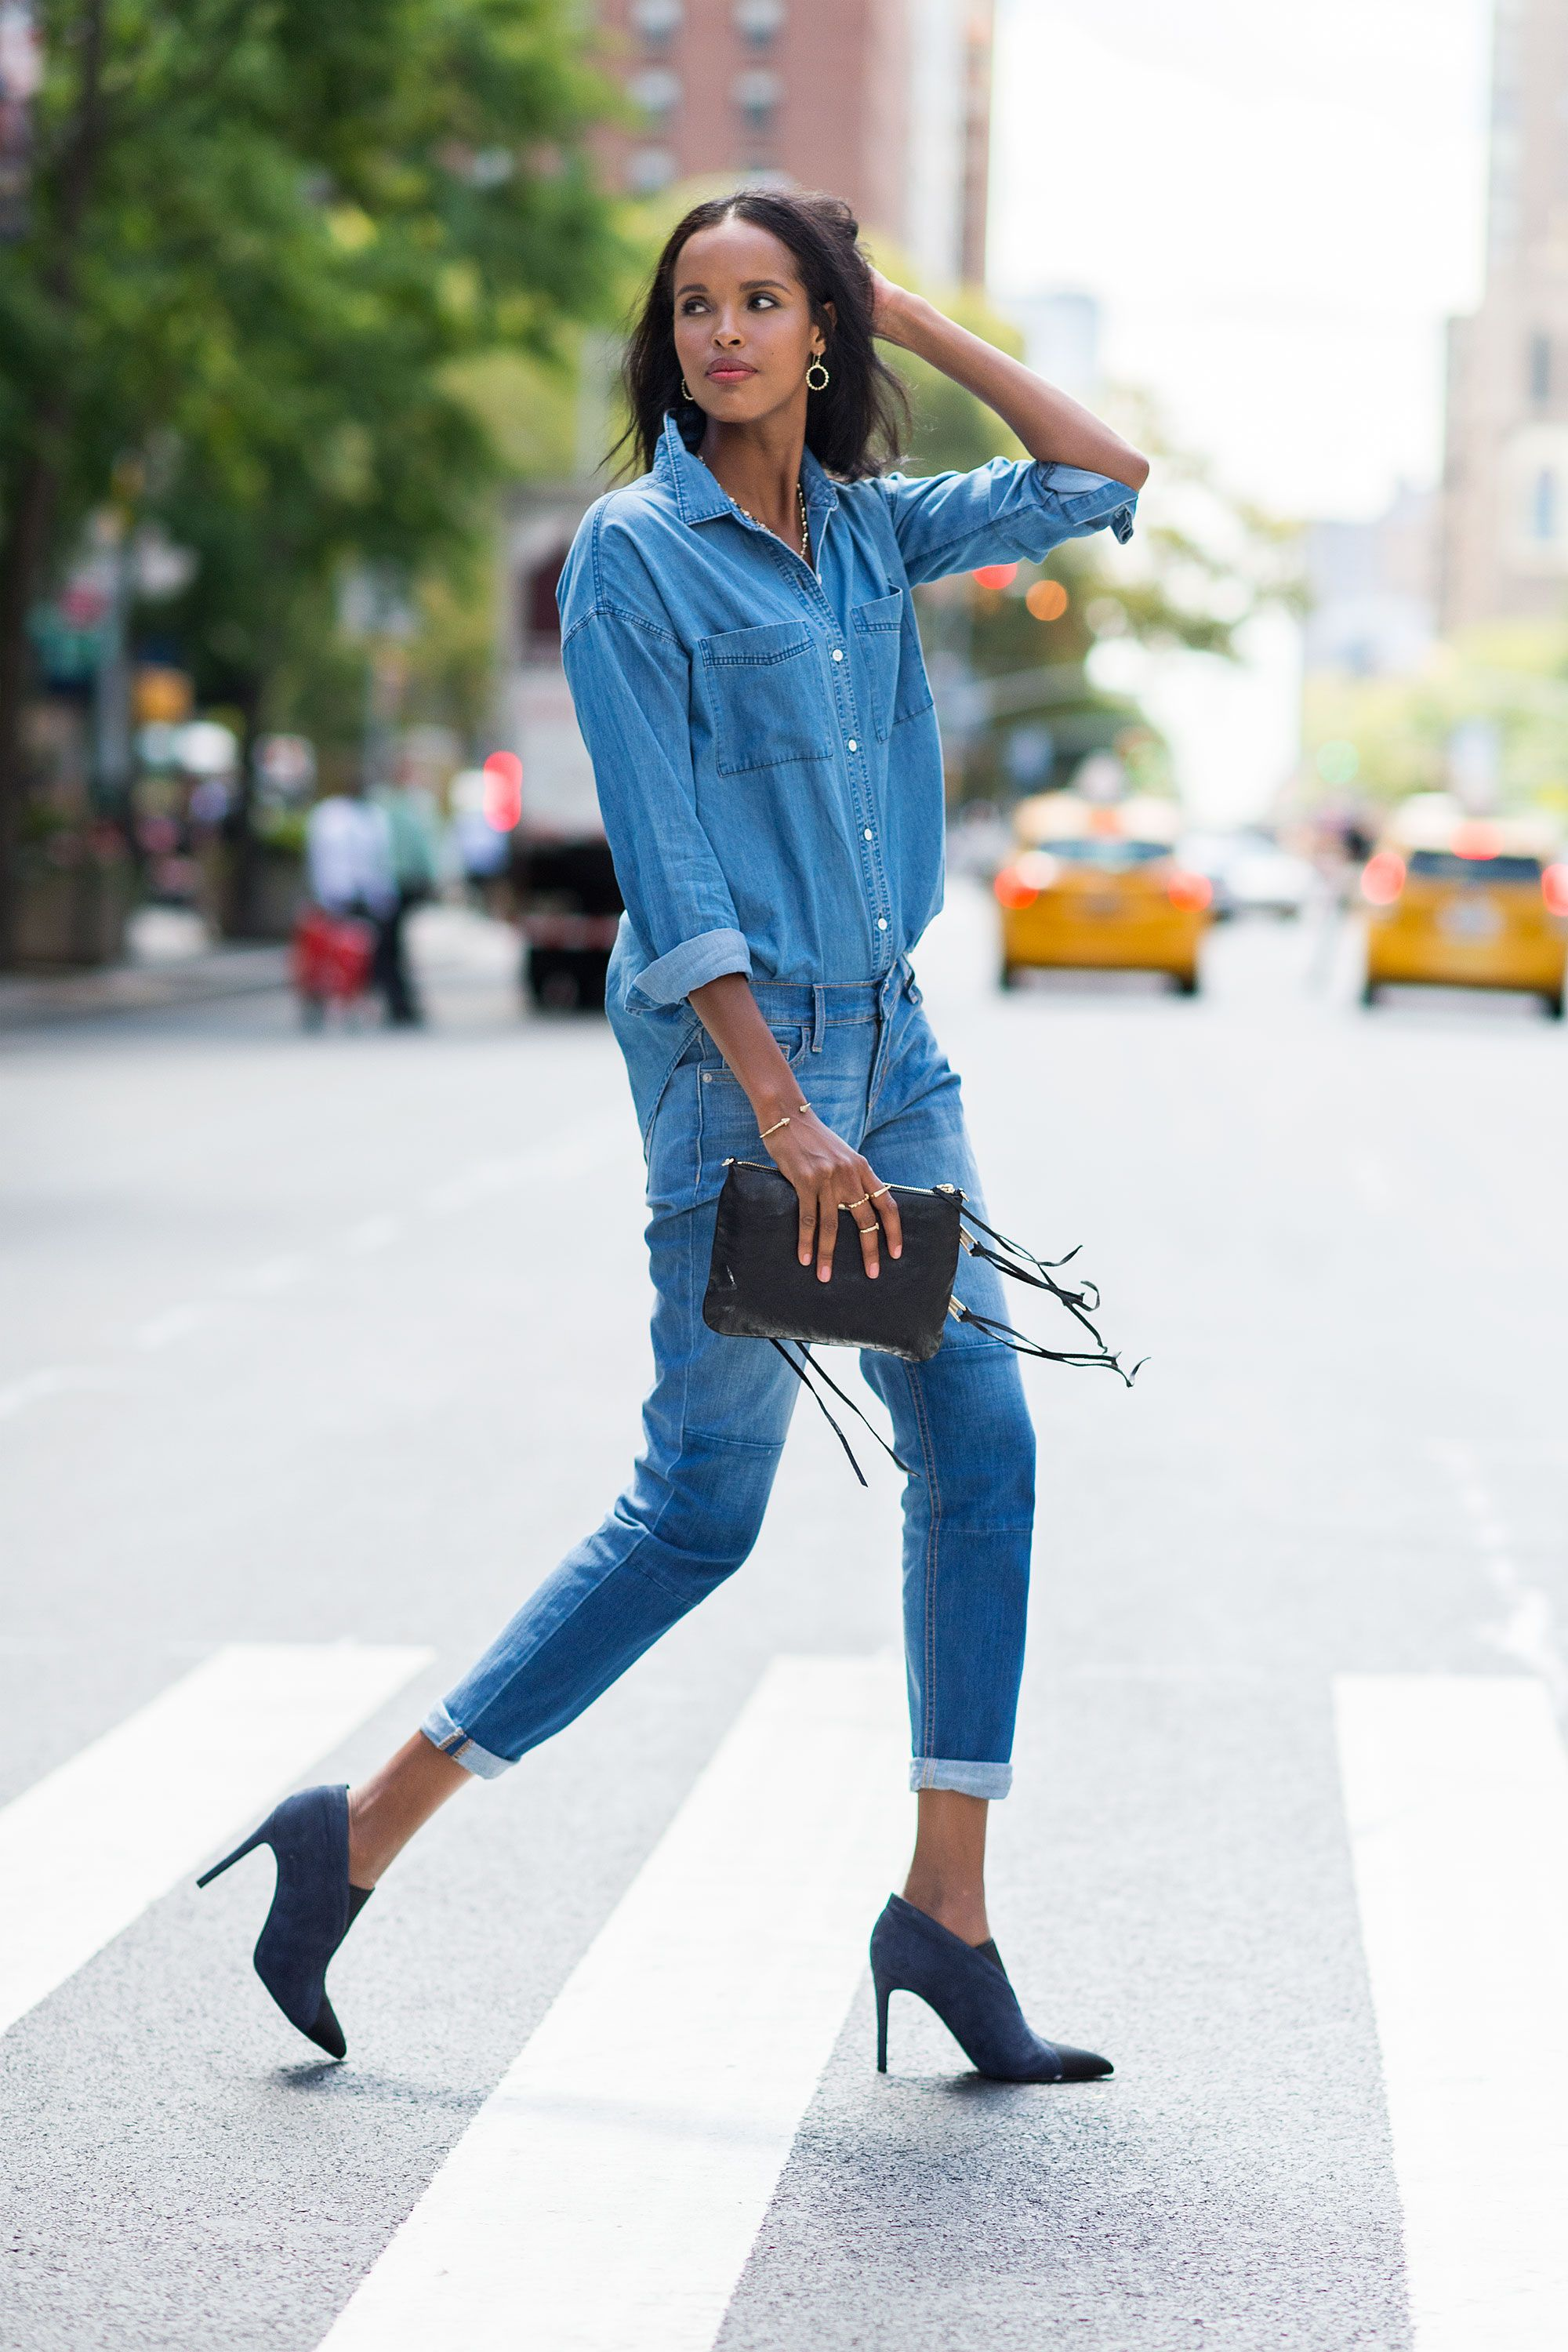 "<p>While the Canadian tuxedo is already <em>so</em> on trend, you can make double denim feel even more unbothered by cuffing the sleeves and ankles, as well as leaving the chambray shirt untucked in the back. No need for a belt; the two-tone booties and fringed clutch add that extra touch of sophistication.</p><p><em>Old Navy Boyfriend Chambray Shirt, $25, <a href=""http://oldnavy.gap.com/browse/product.do?cid=72302&vid=1&pid=597602002"" target=""_blank"">oldnavy.com</a>; Old Navy Boyfriend Skinny Ankle Jeans, $27, <a href=""http://oldnavy.gap.com/browse/product.do?cid=91608&vid=1&pid=714166002"" target=""_blank"">oldnavy.com</a>; Sigerson Morrison Garnet Booties, $450, <a href=""http://www.sigersonmorrison.com/garnet-16.html?color_true=DARK+BLUE+NUBUCK"" target=""_blank"">sigersonmorrison.com</a>; Rebecca Minkoff Mini M.A.C. Crossbody, $195, <a href=""http://www.rebeccaminkoff.com/mini-m-a-c-crossbody-black-light-gold-classic"" target=""_blank"">rebeccaminkoff.com</a>; Melinda Maria Pyramid Circle Drop Earrings, $98, <a href=""http://www.melindamaria.com"" target=""_blank"">melindamaria.com</a>; Melinda Maria Graham Lariat Necklace, $498, <a href=""http://www.melindamaria.com"" target=""_blank"">melindamaria.com</a>; Melinda Maria Mila Pave Bangle, $78, <a href=""http://www.melindamaria.com"" target=""_blank"">melindamaria.com</a>; Melinda Maria Pyramid Ring, $38, <a href=""http://www.melindamaria.com"">melindamaria.com</a>. </em></p>"